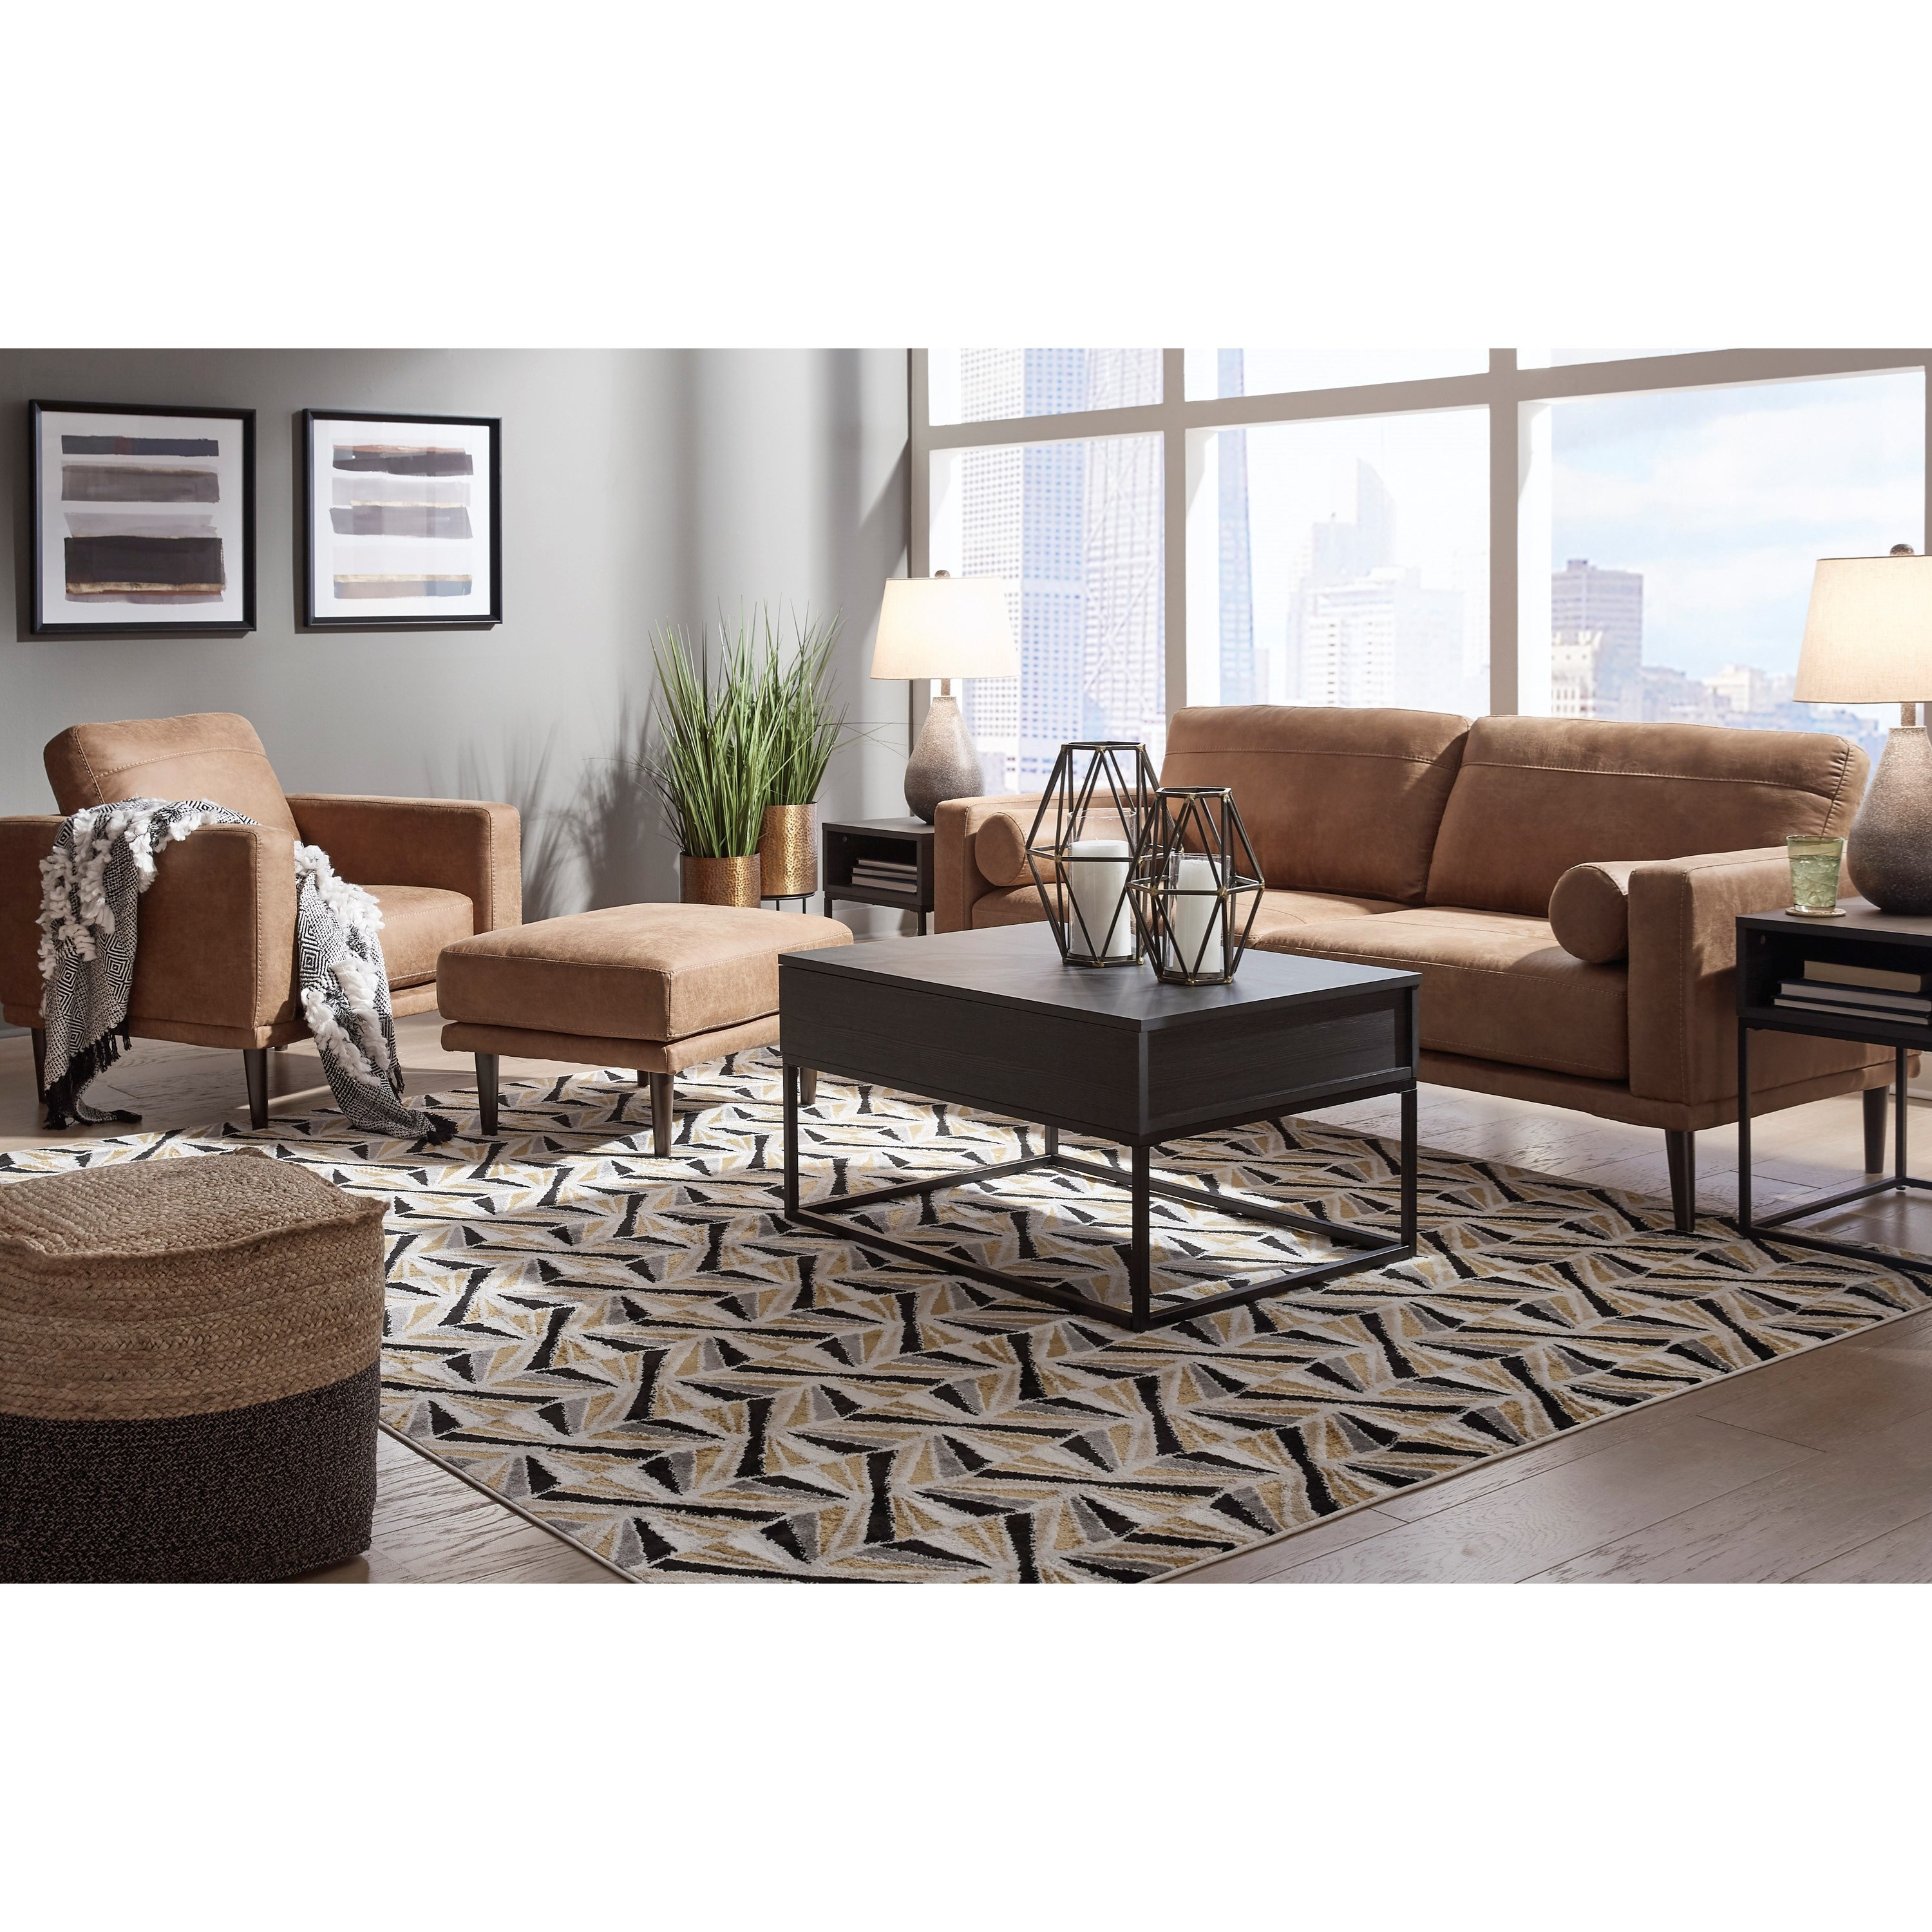 Arroyo Living Room Group by Signature Design by Ashley at Smart Buy Furniture